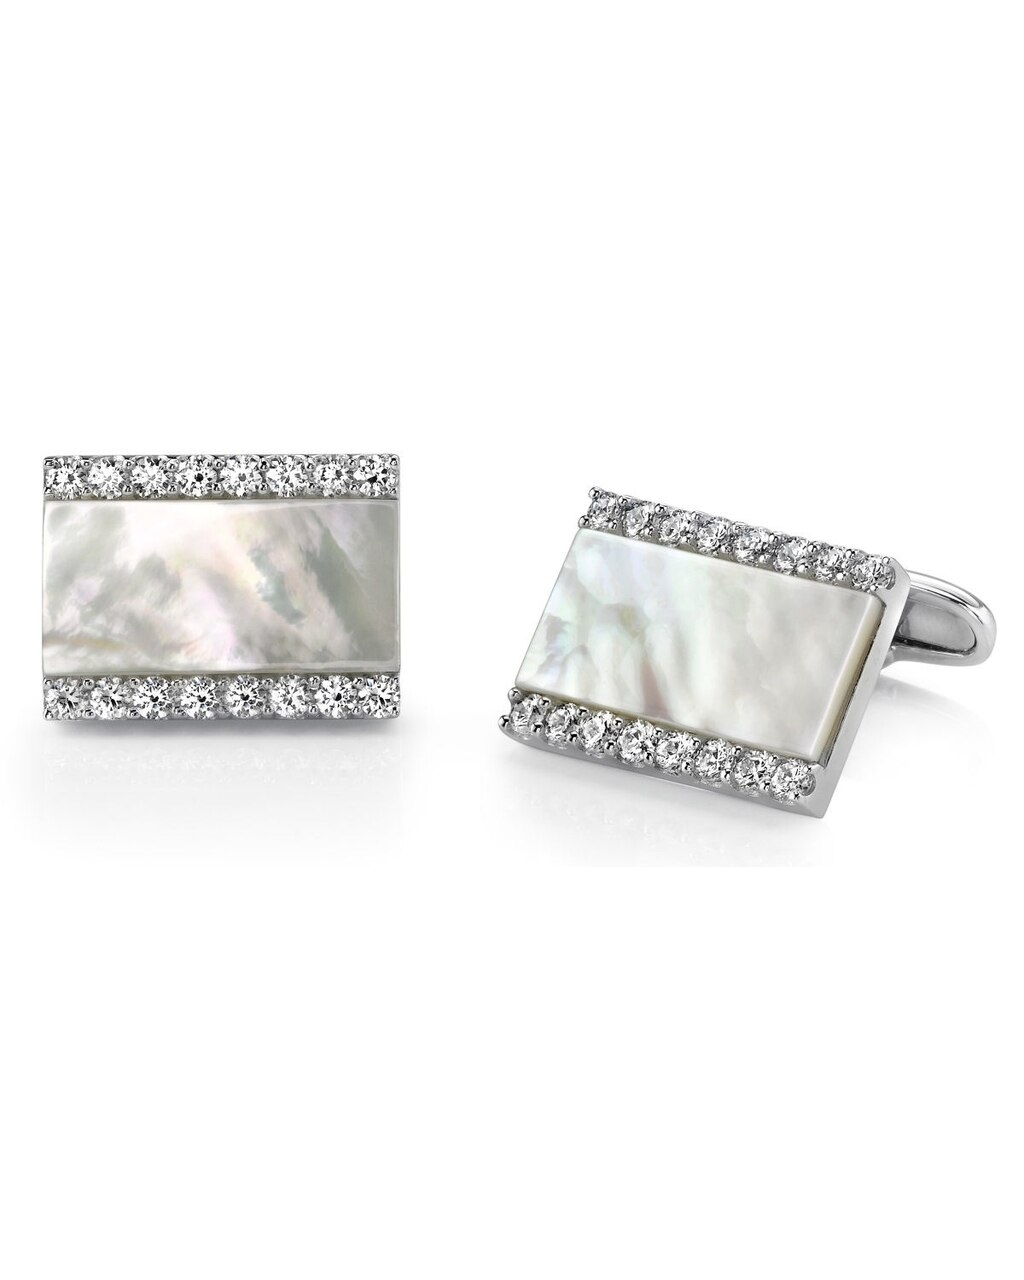 These stunning cufflinks feature beautiful mother of pearl and cubic zirconia crystals